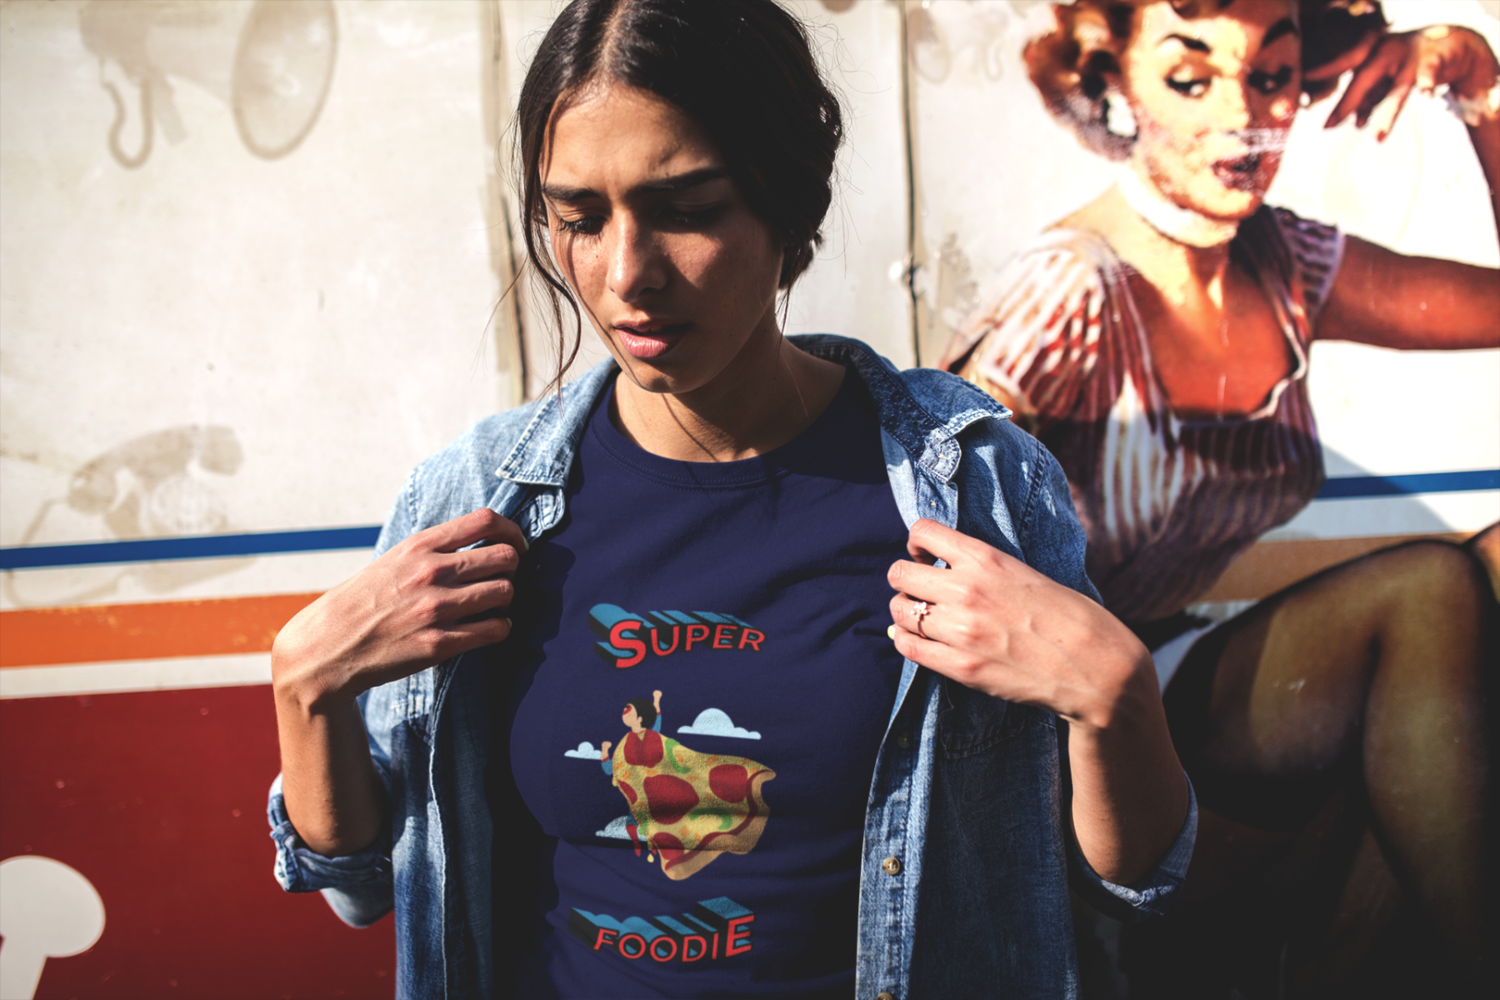 Superfoodie T-Shirt